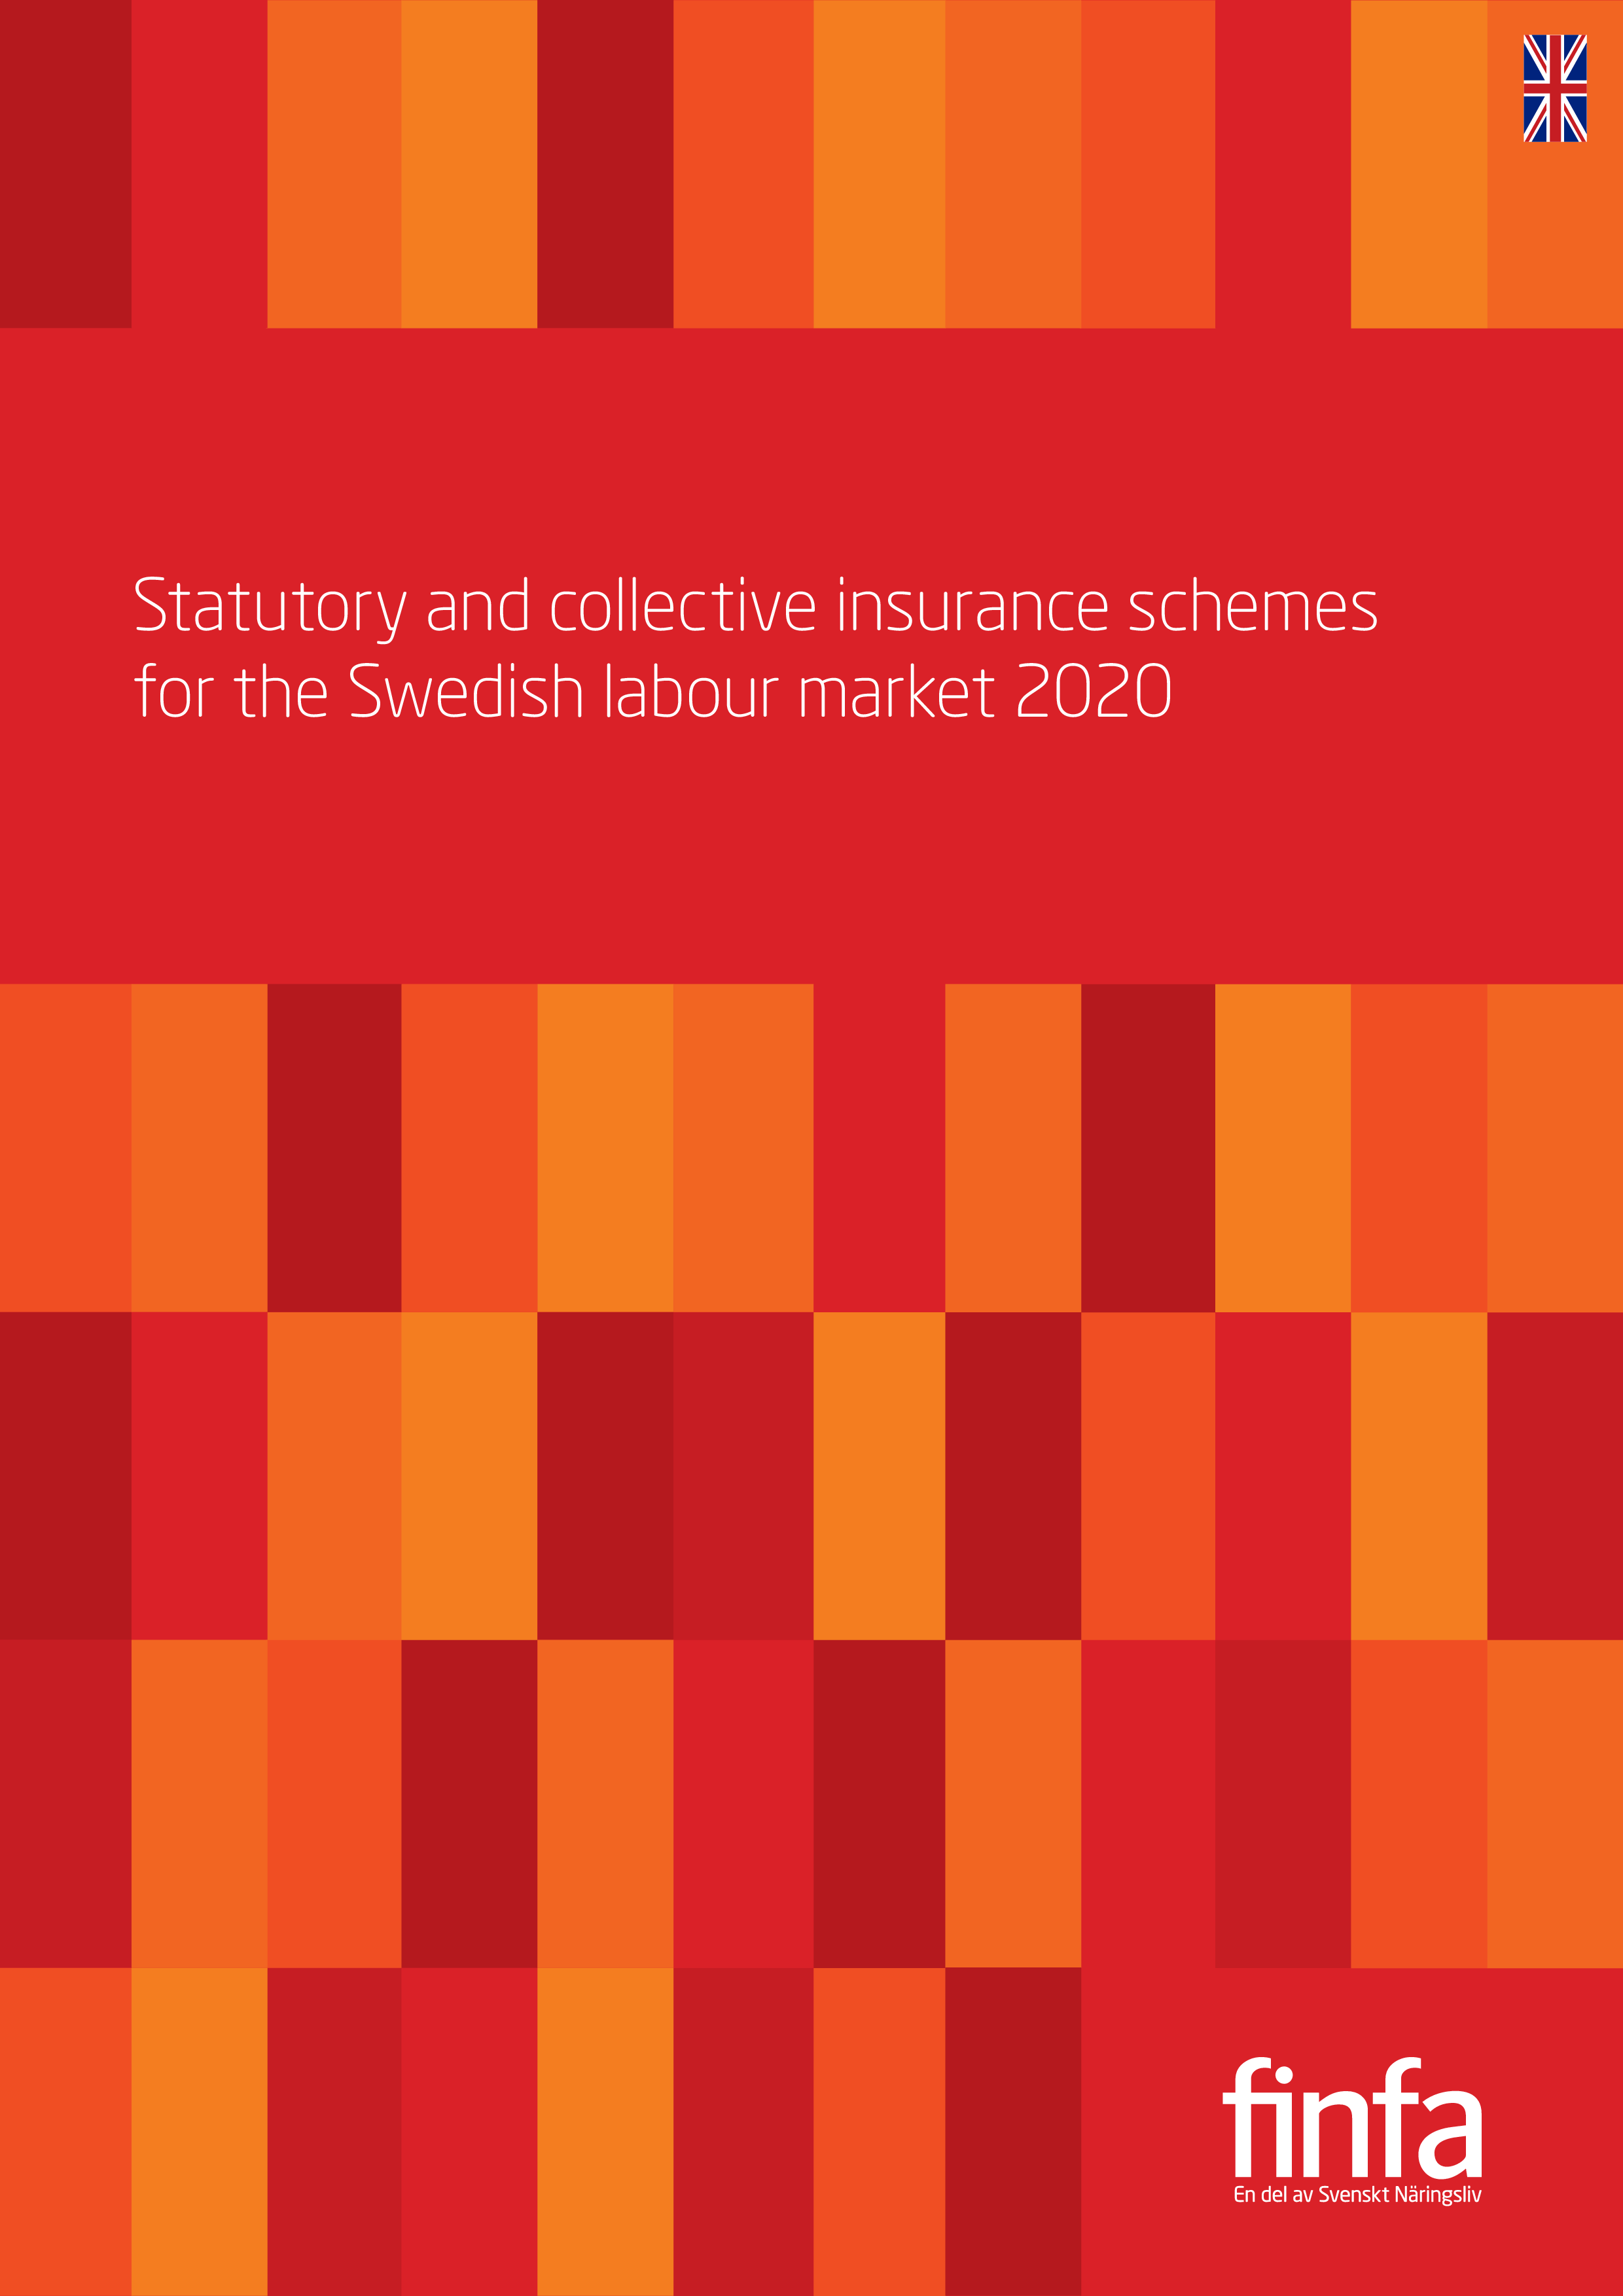 Statutory and collective insurance schemes for the Swedish labour market 2020